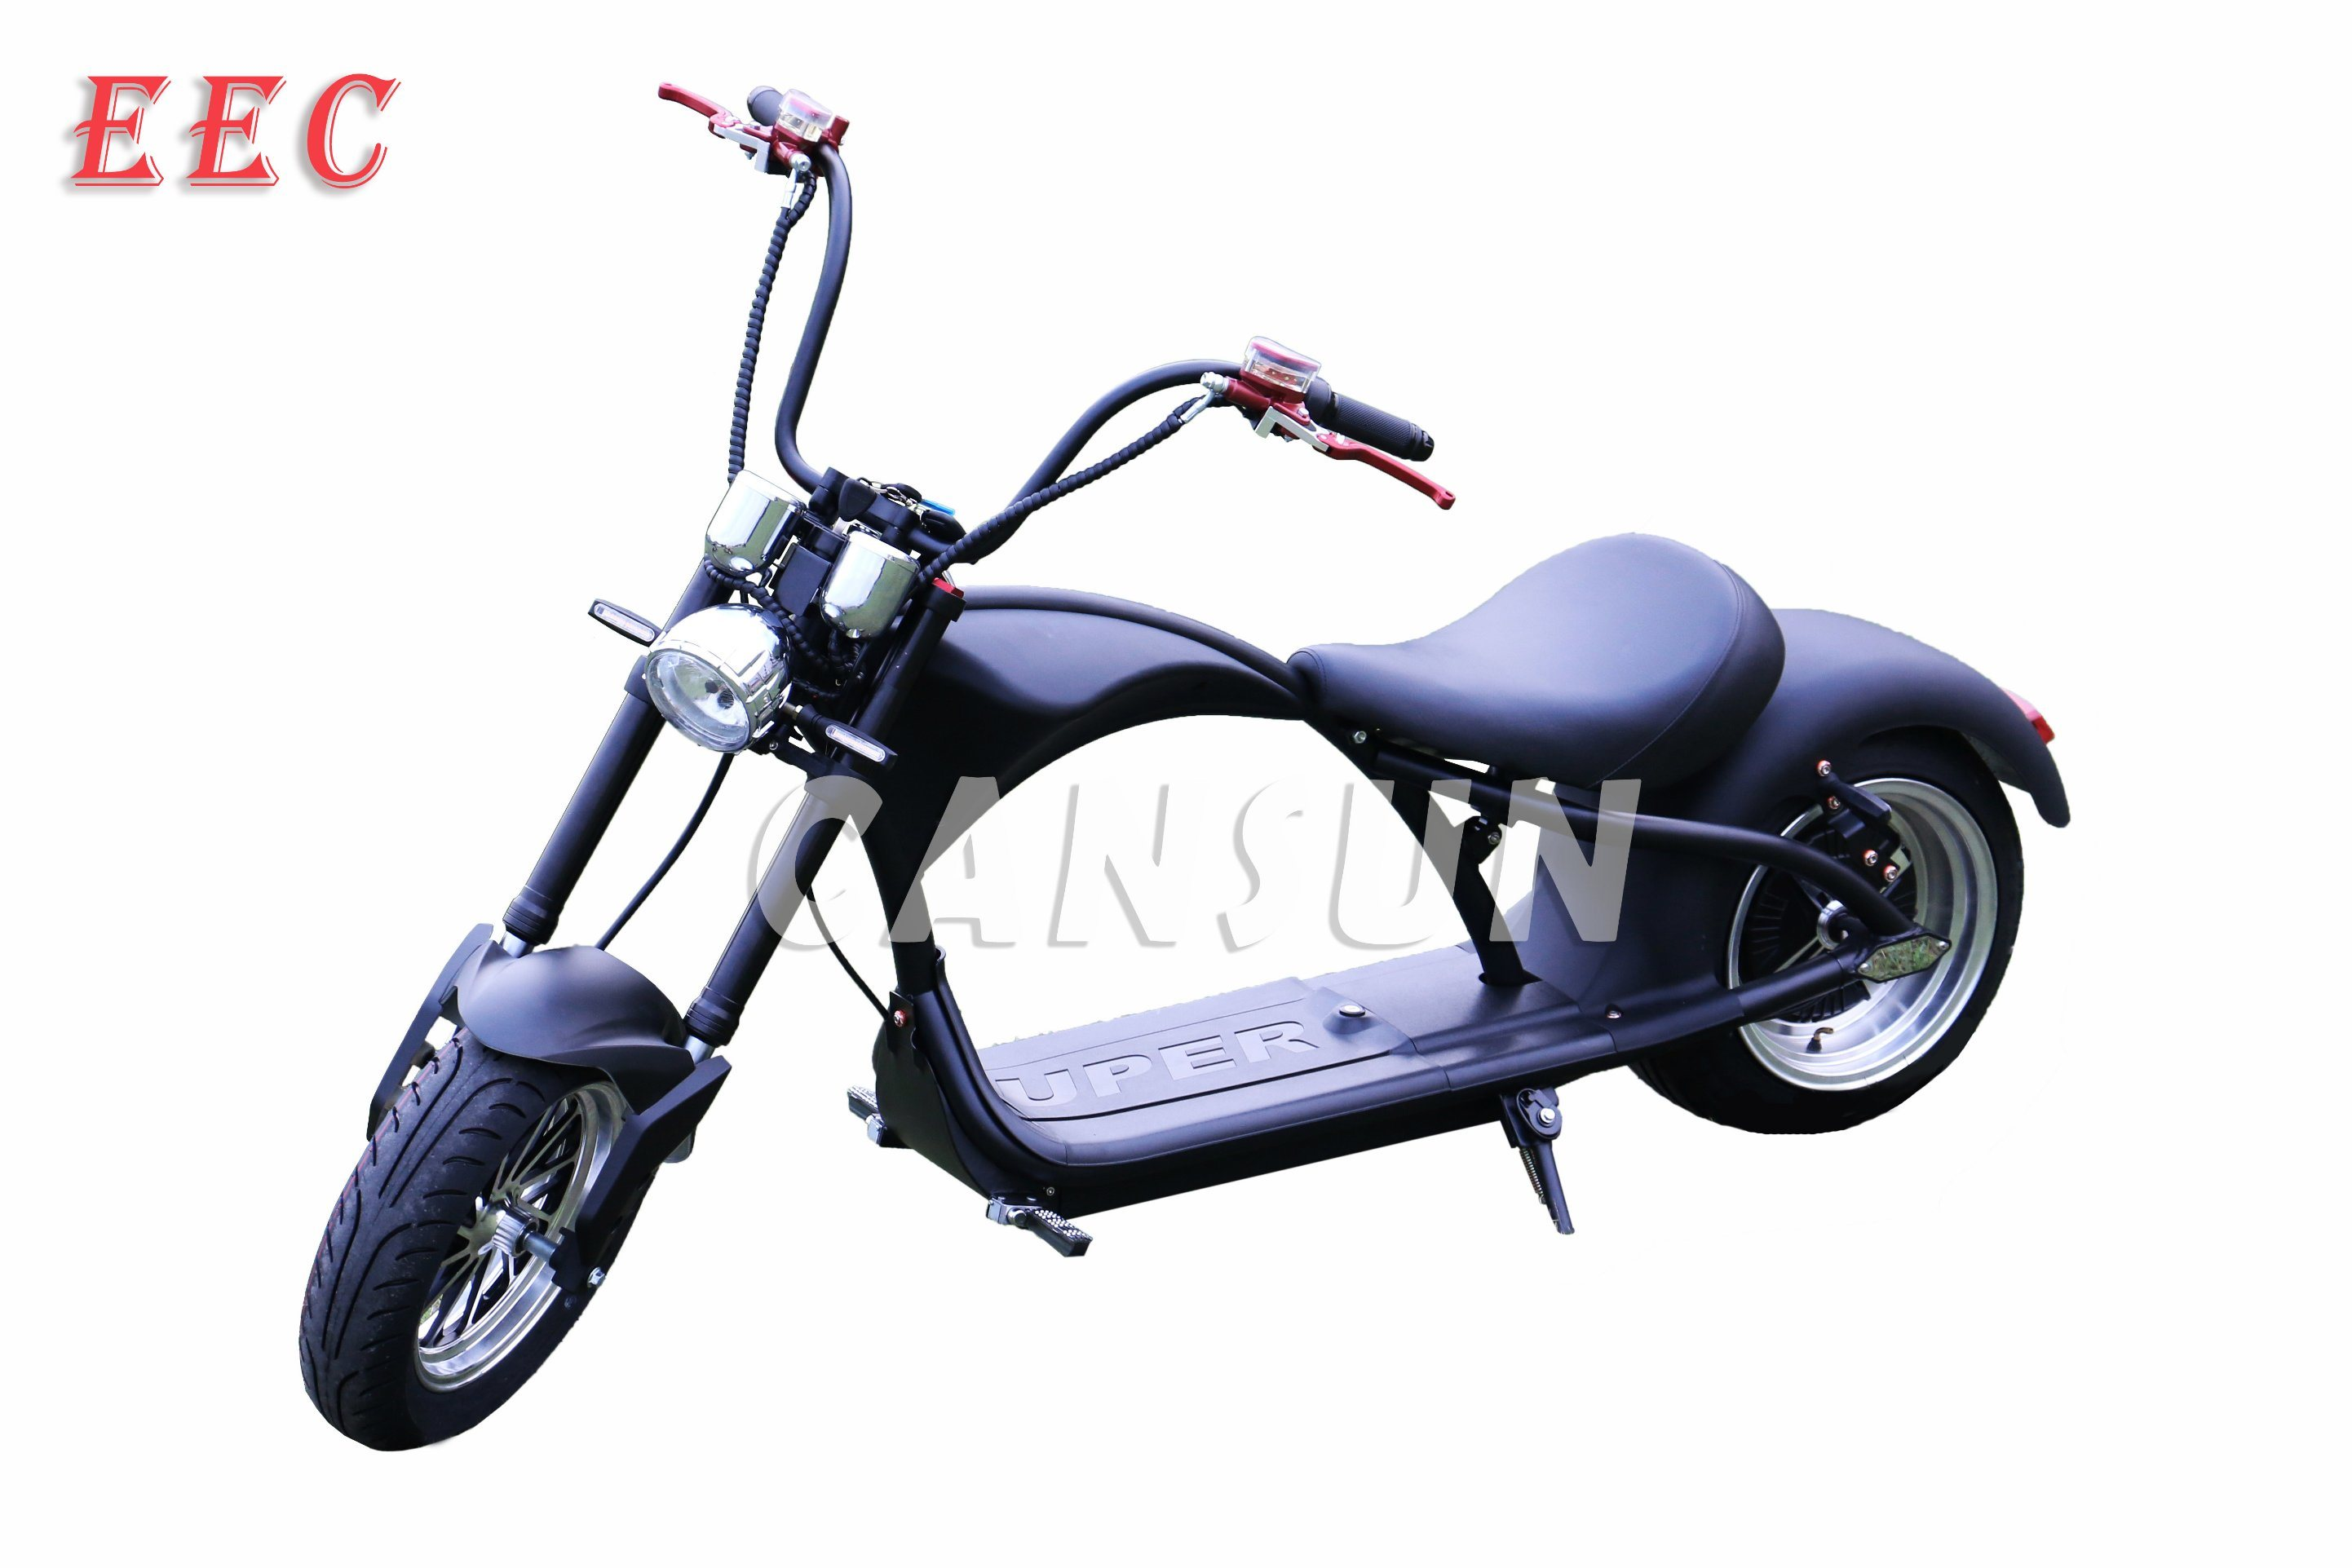 2000W High Power Brushless Motor EEC Electric Motorcycle pictures & photos